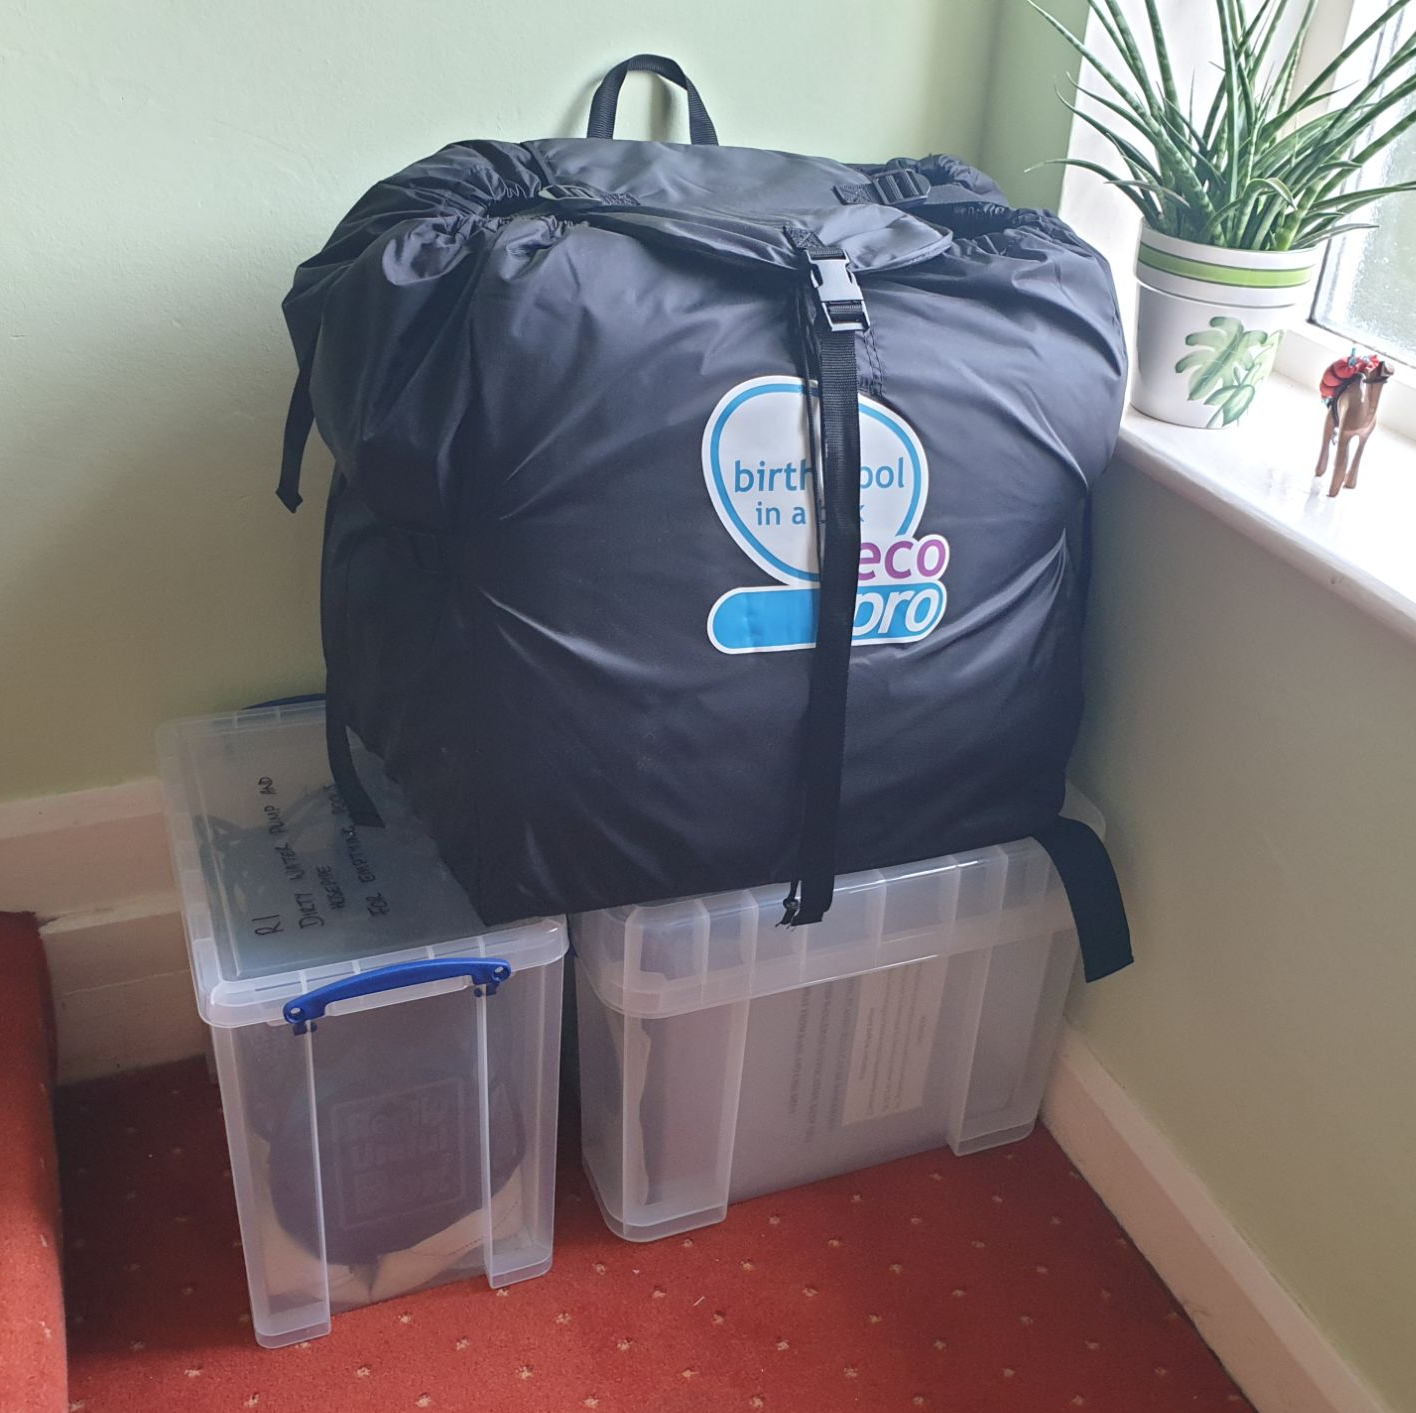 2 lidded plastic boxes on the floor, with a birth pool in a storage bag on top of them.